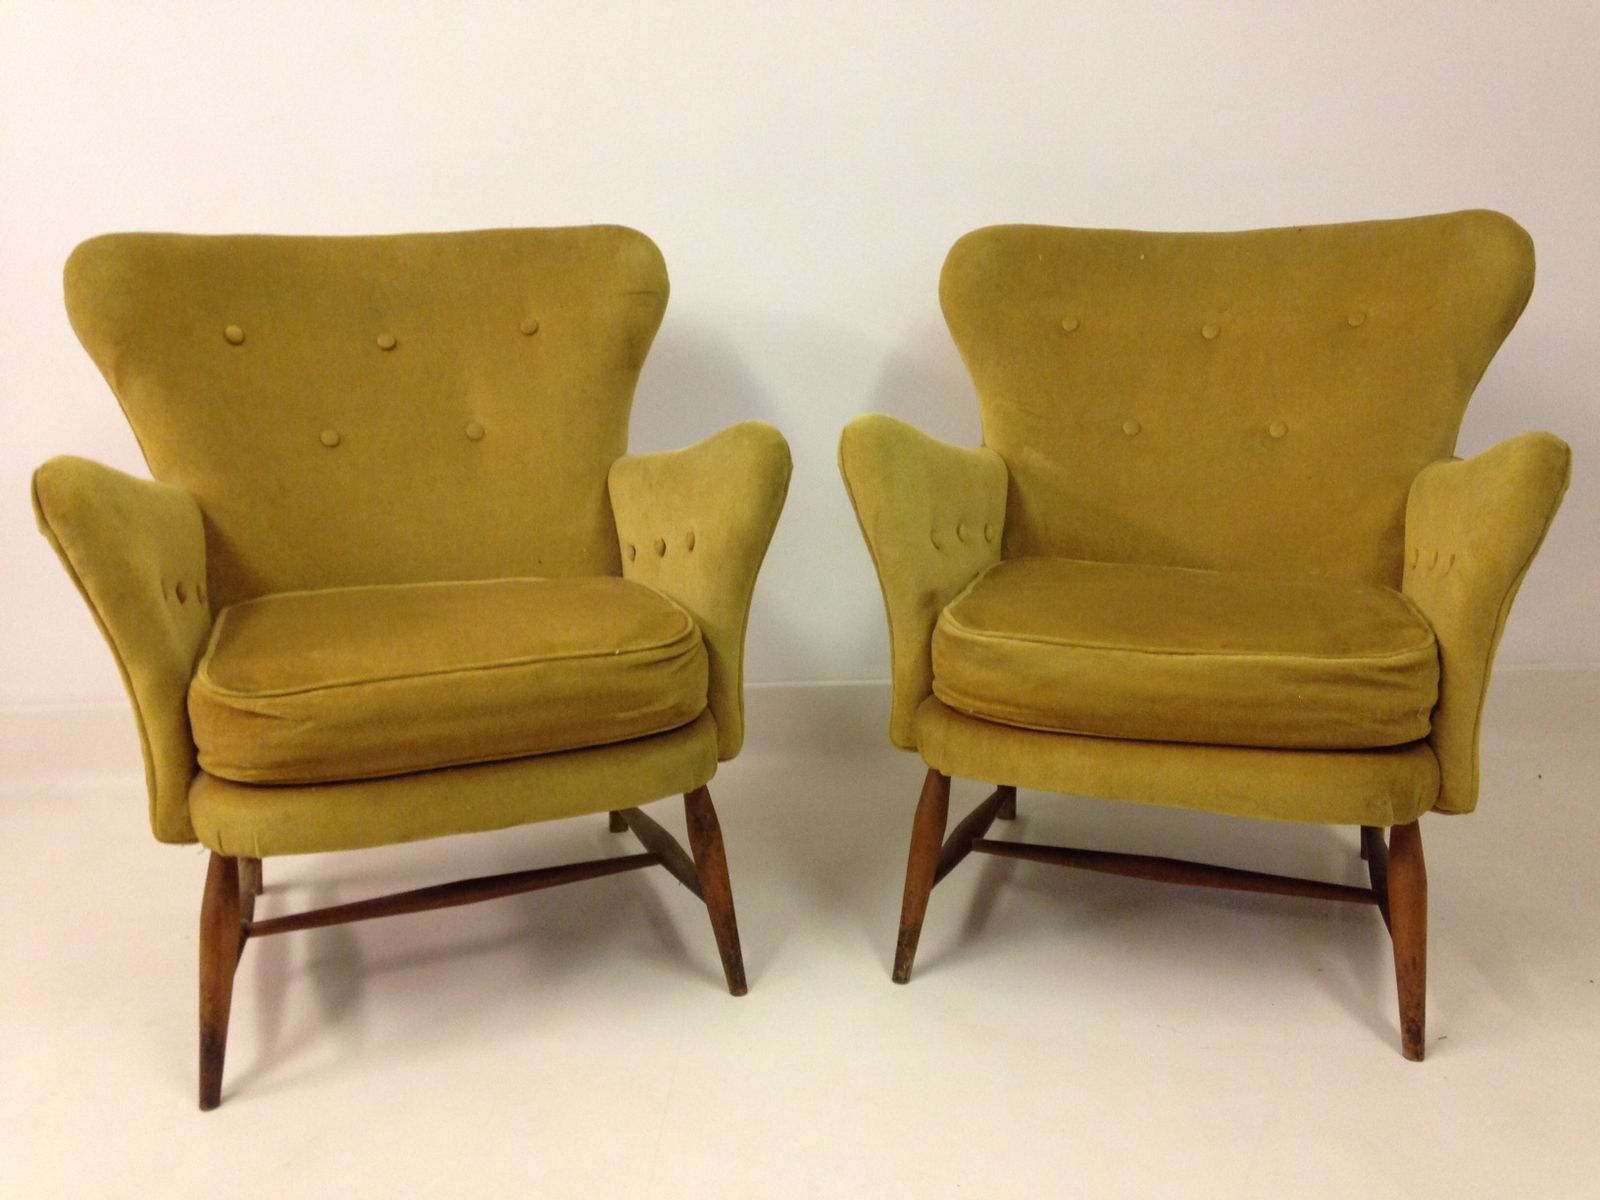 Vintage Armchairs From Ercol 1950s Set Of 2 For Sale At